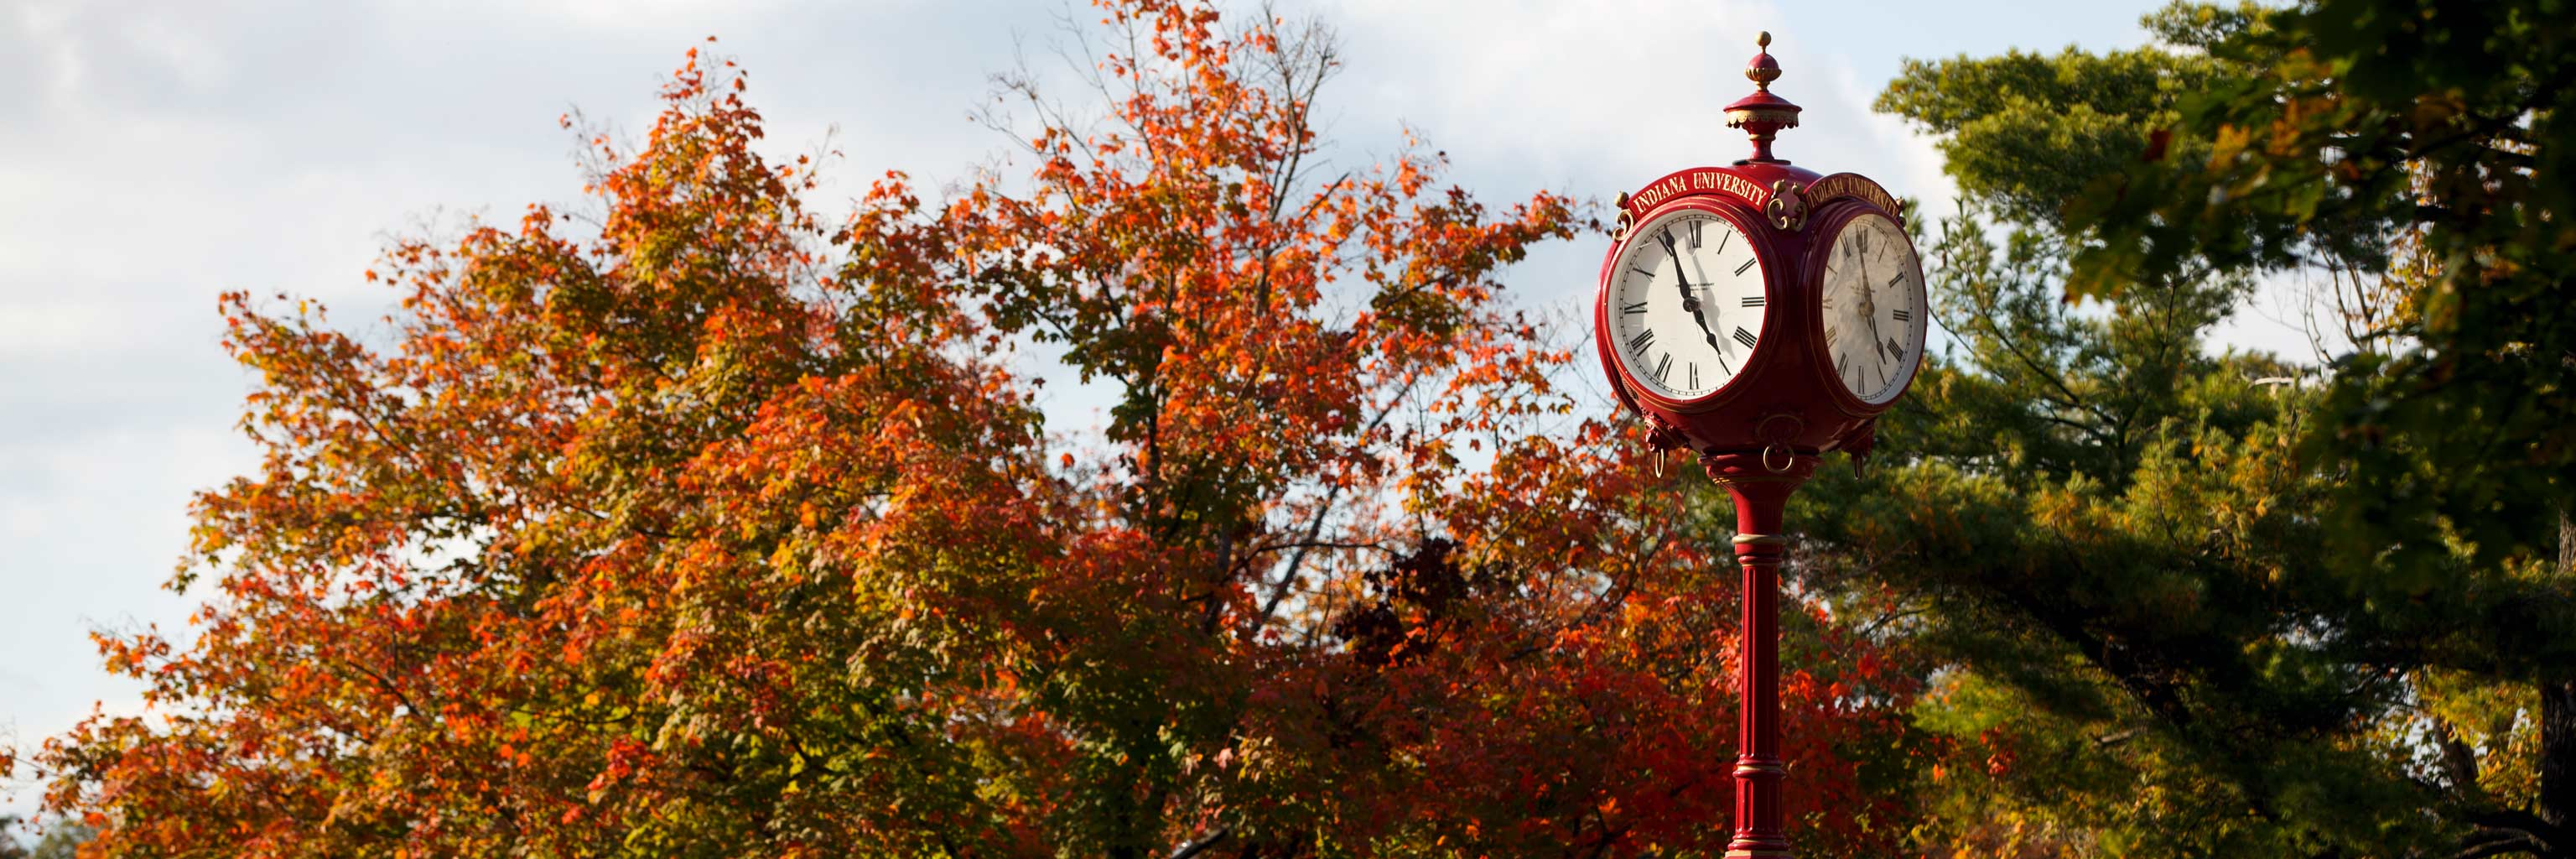 The red IU clock with fall leaves.